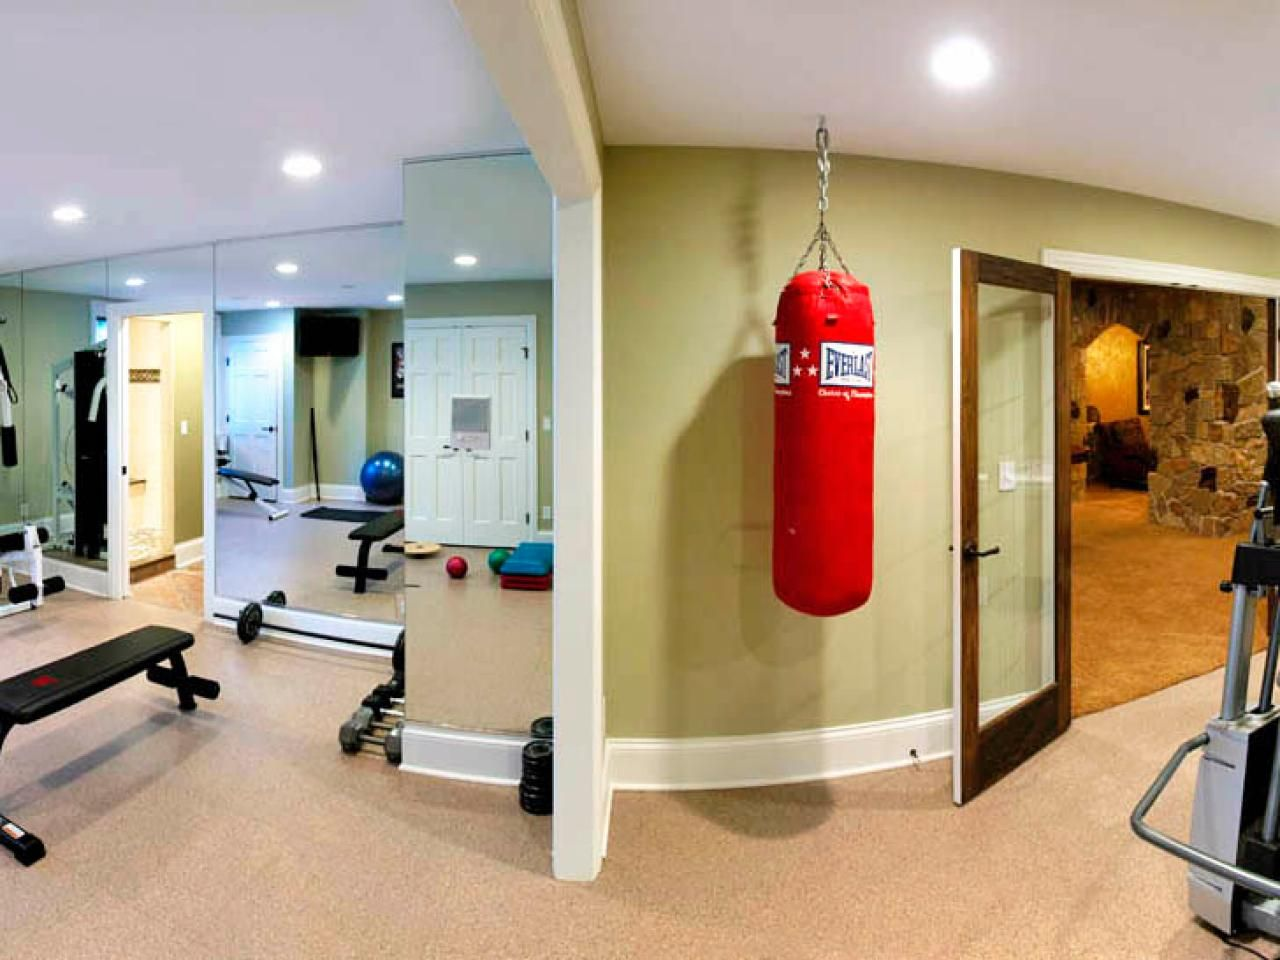 Exercise Rooms In Basements. Images Of Fun Basements And Game Rooms For The Family Home Remodeling Ideas For Basements Home Theaters More Hgtv